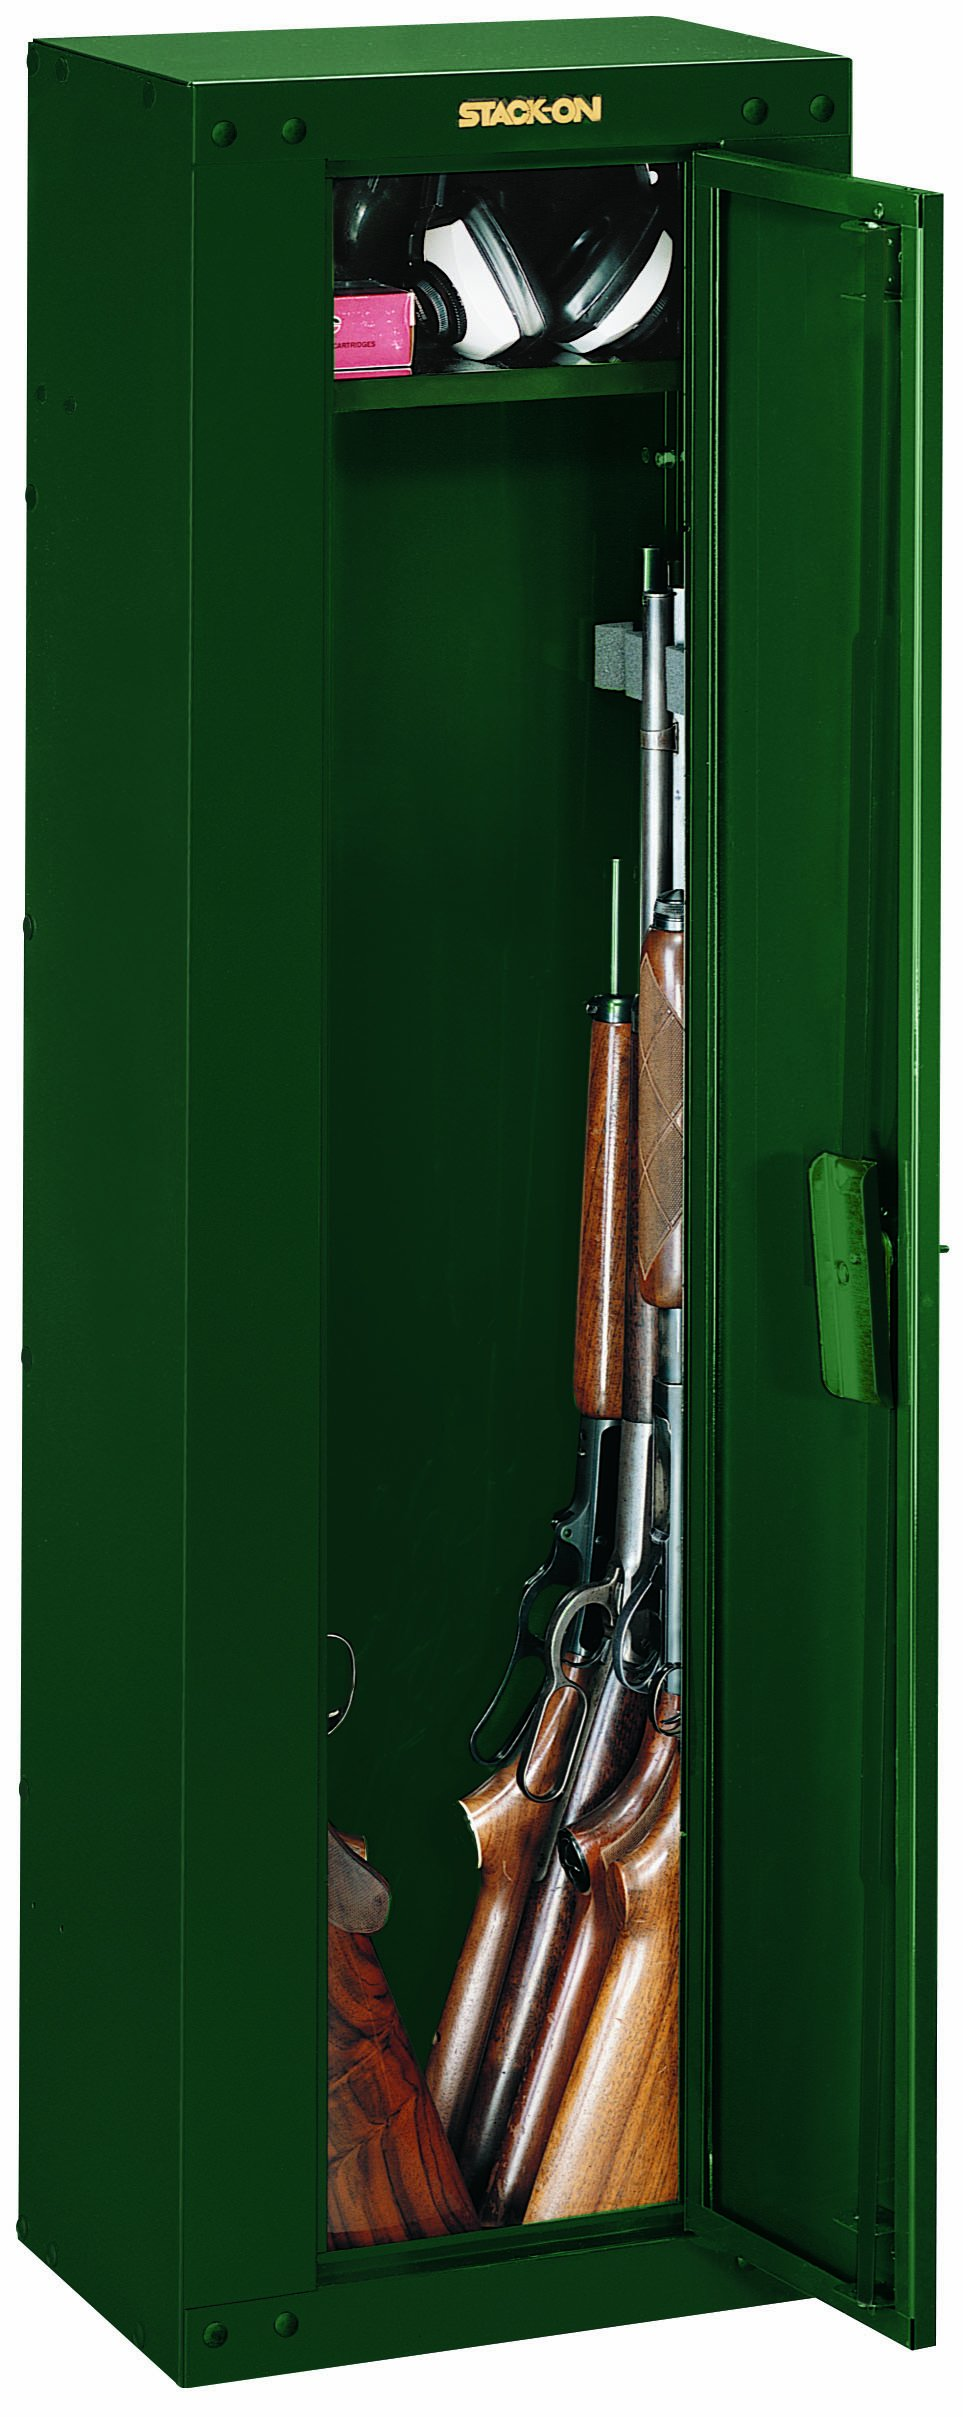 Stack-On GCG-8RTA Steel 8-Gun Ready to Assemble Security Cabinet, Hunter Green